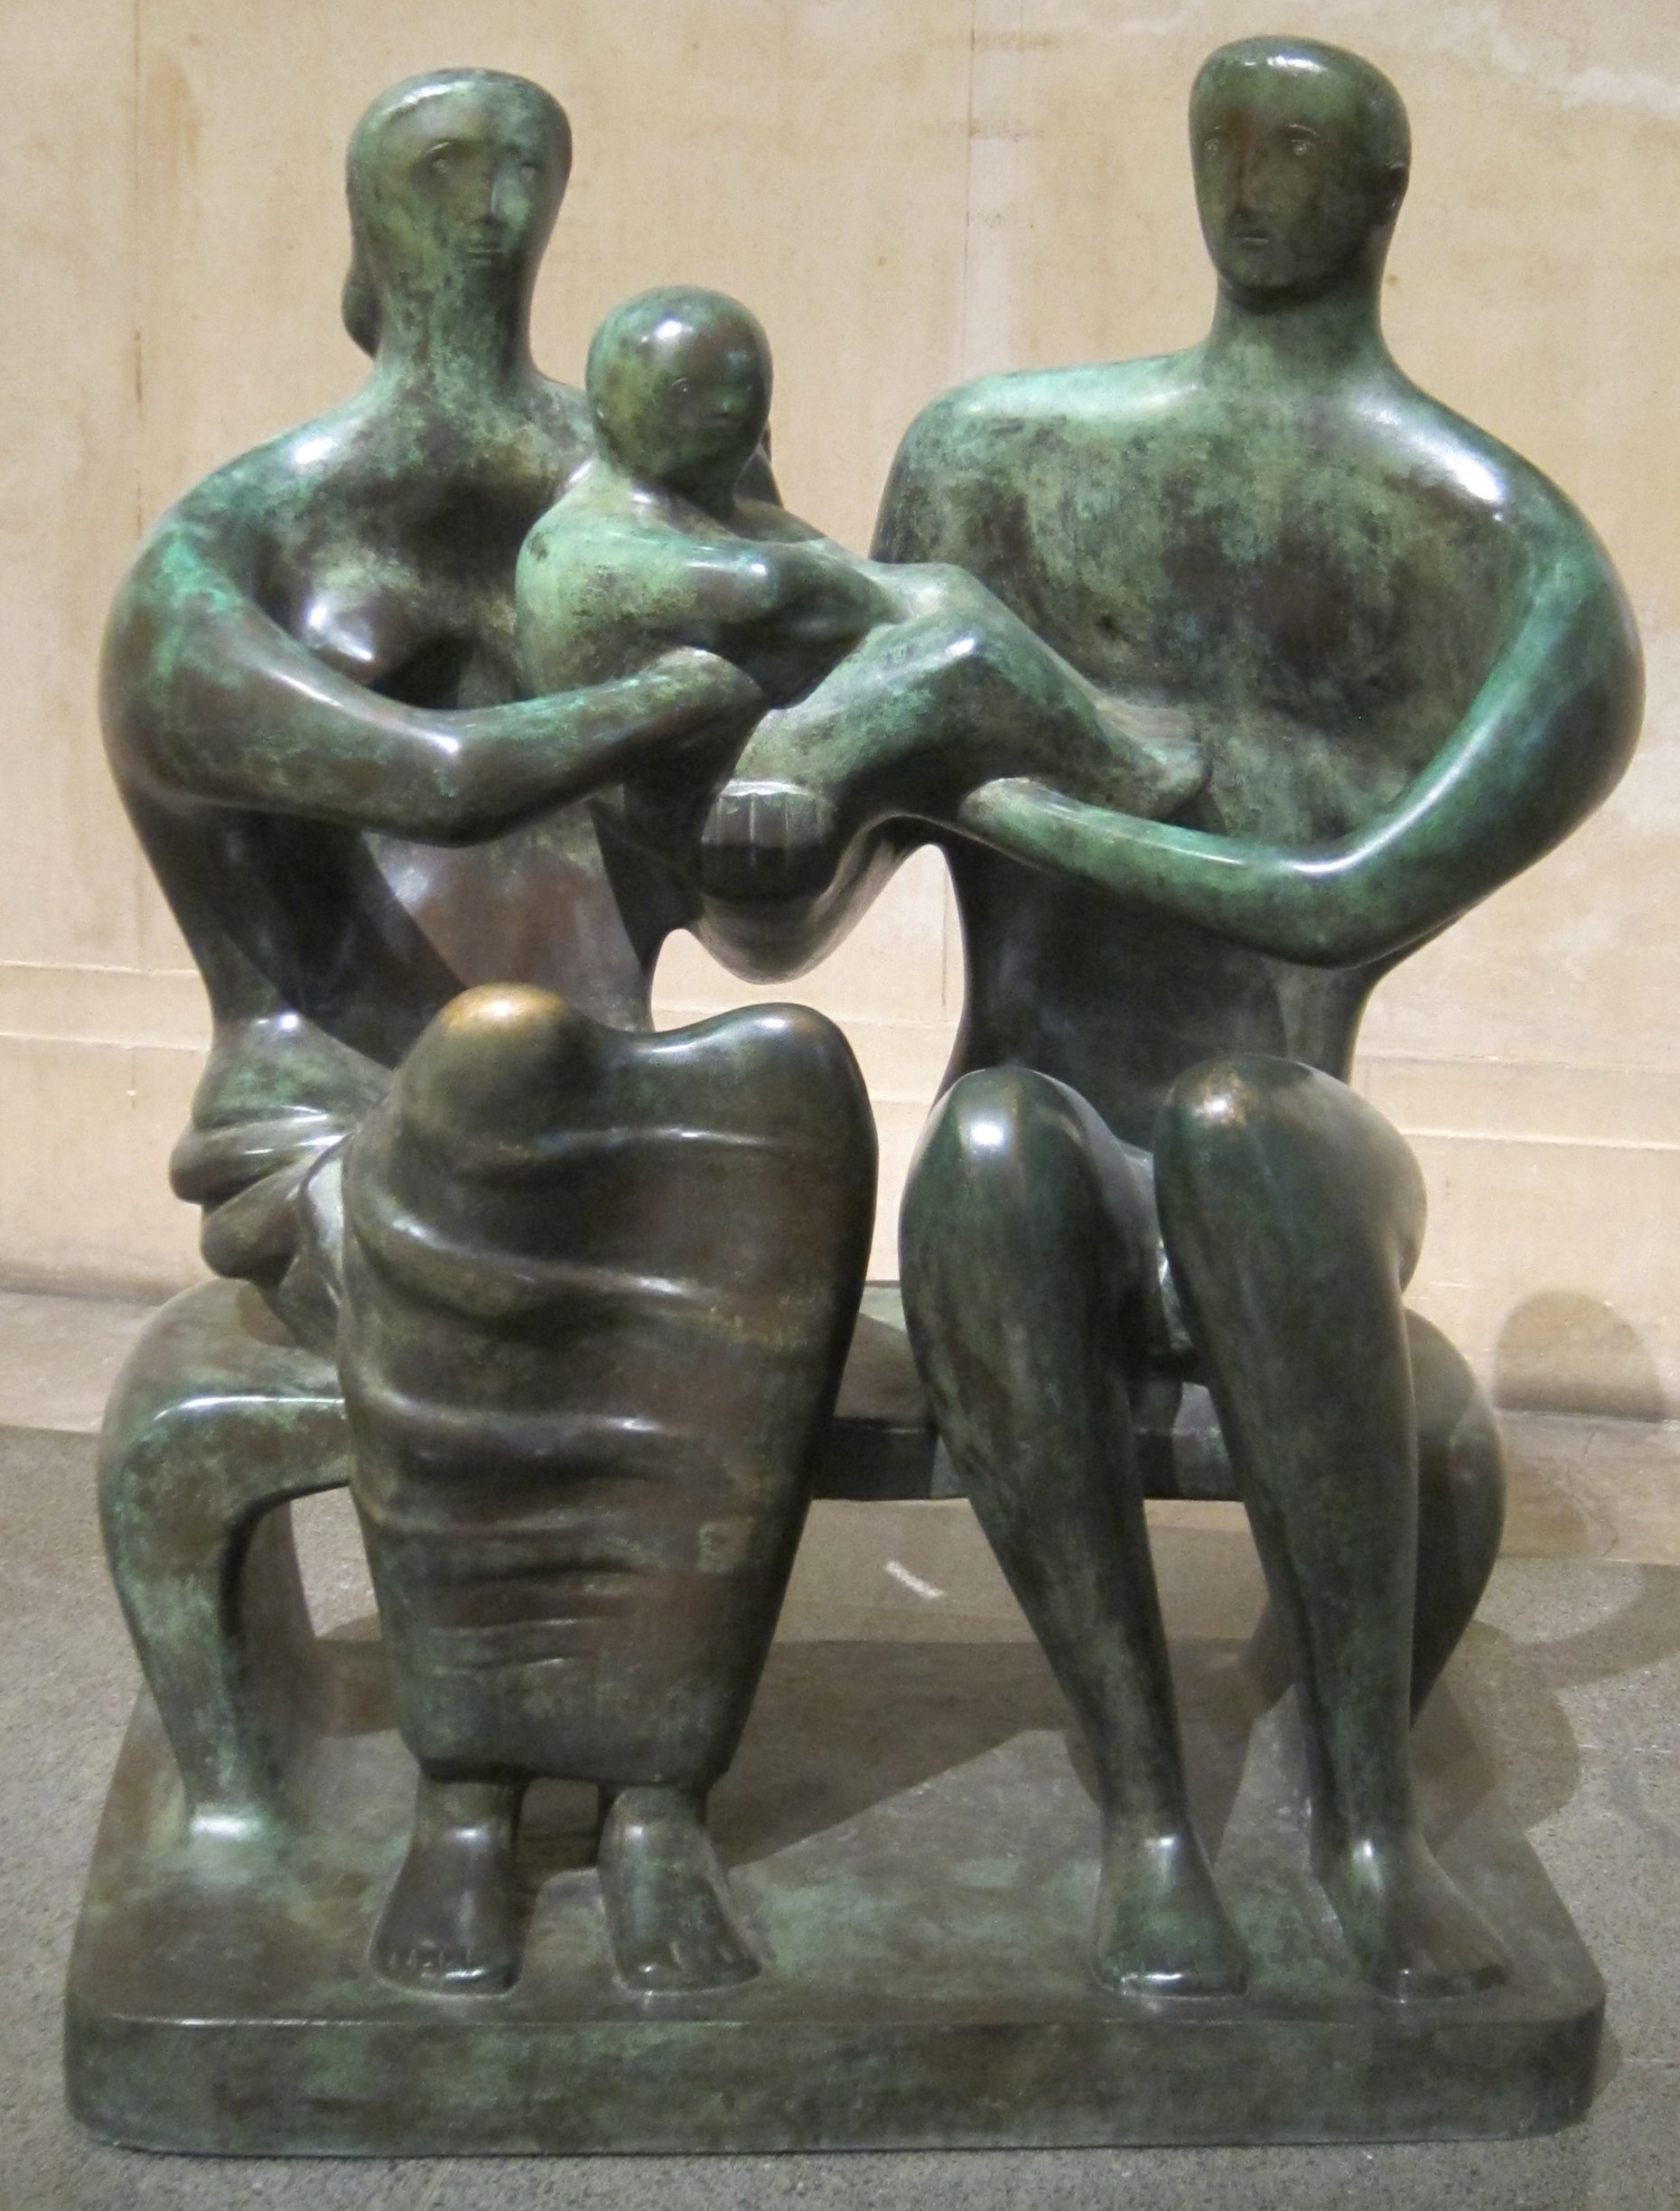 'Family_Group',_bronze_sculpture_by_Henry_Moore,_1949,_Tate_Britain